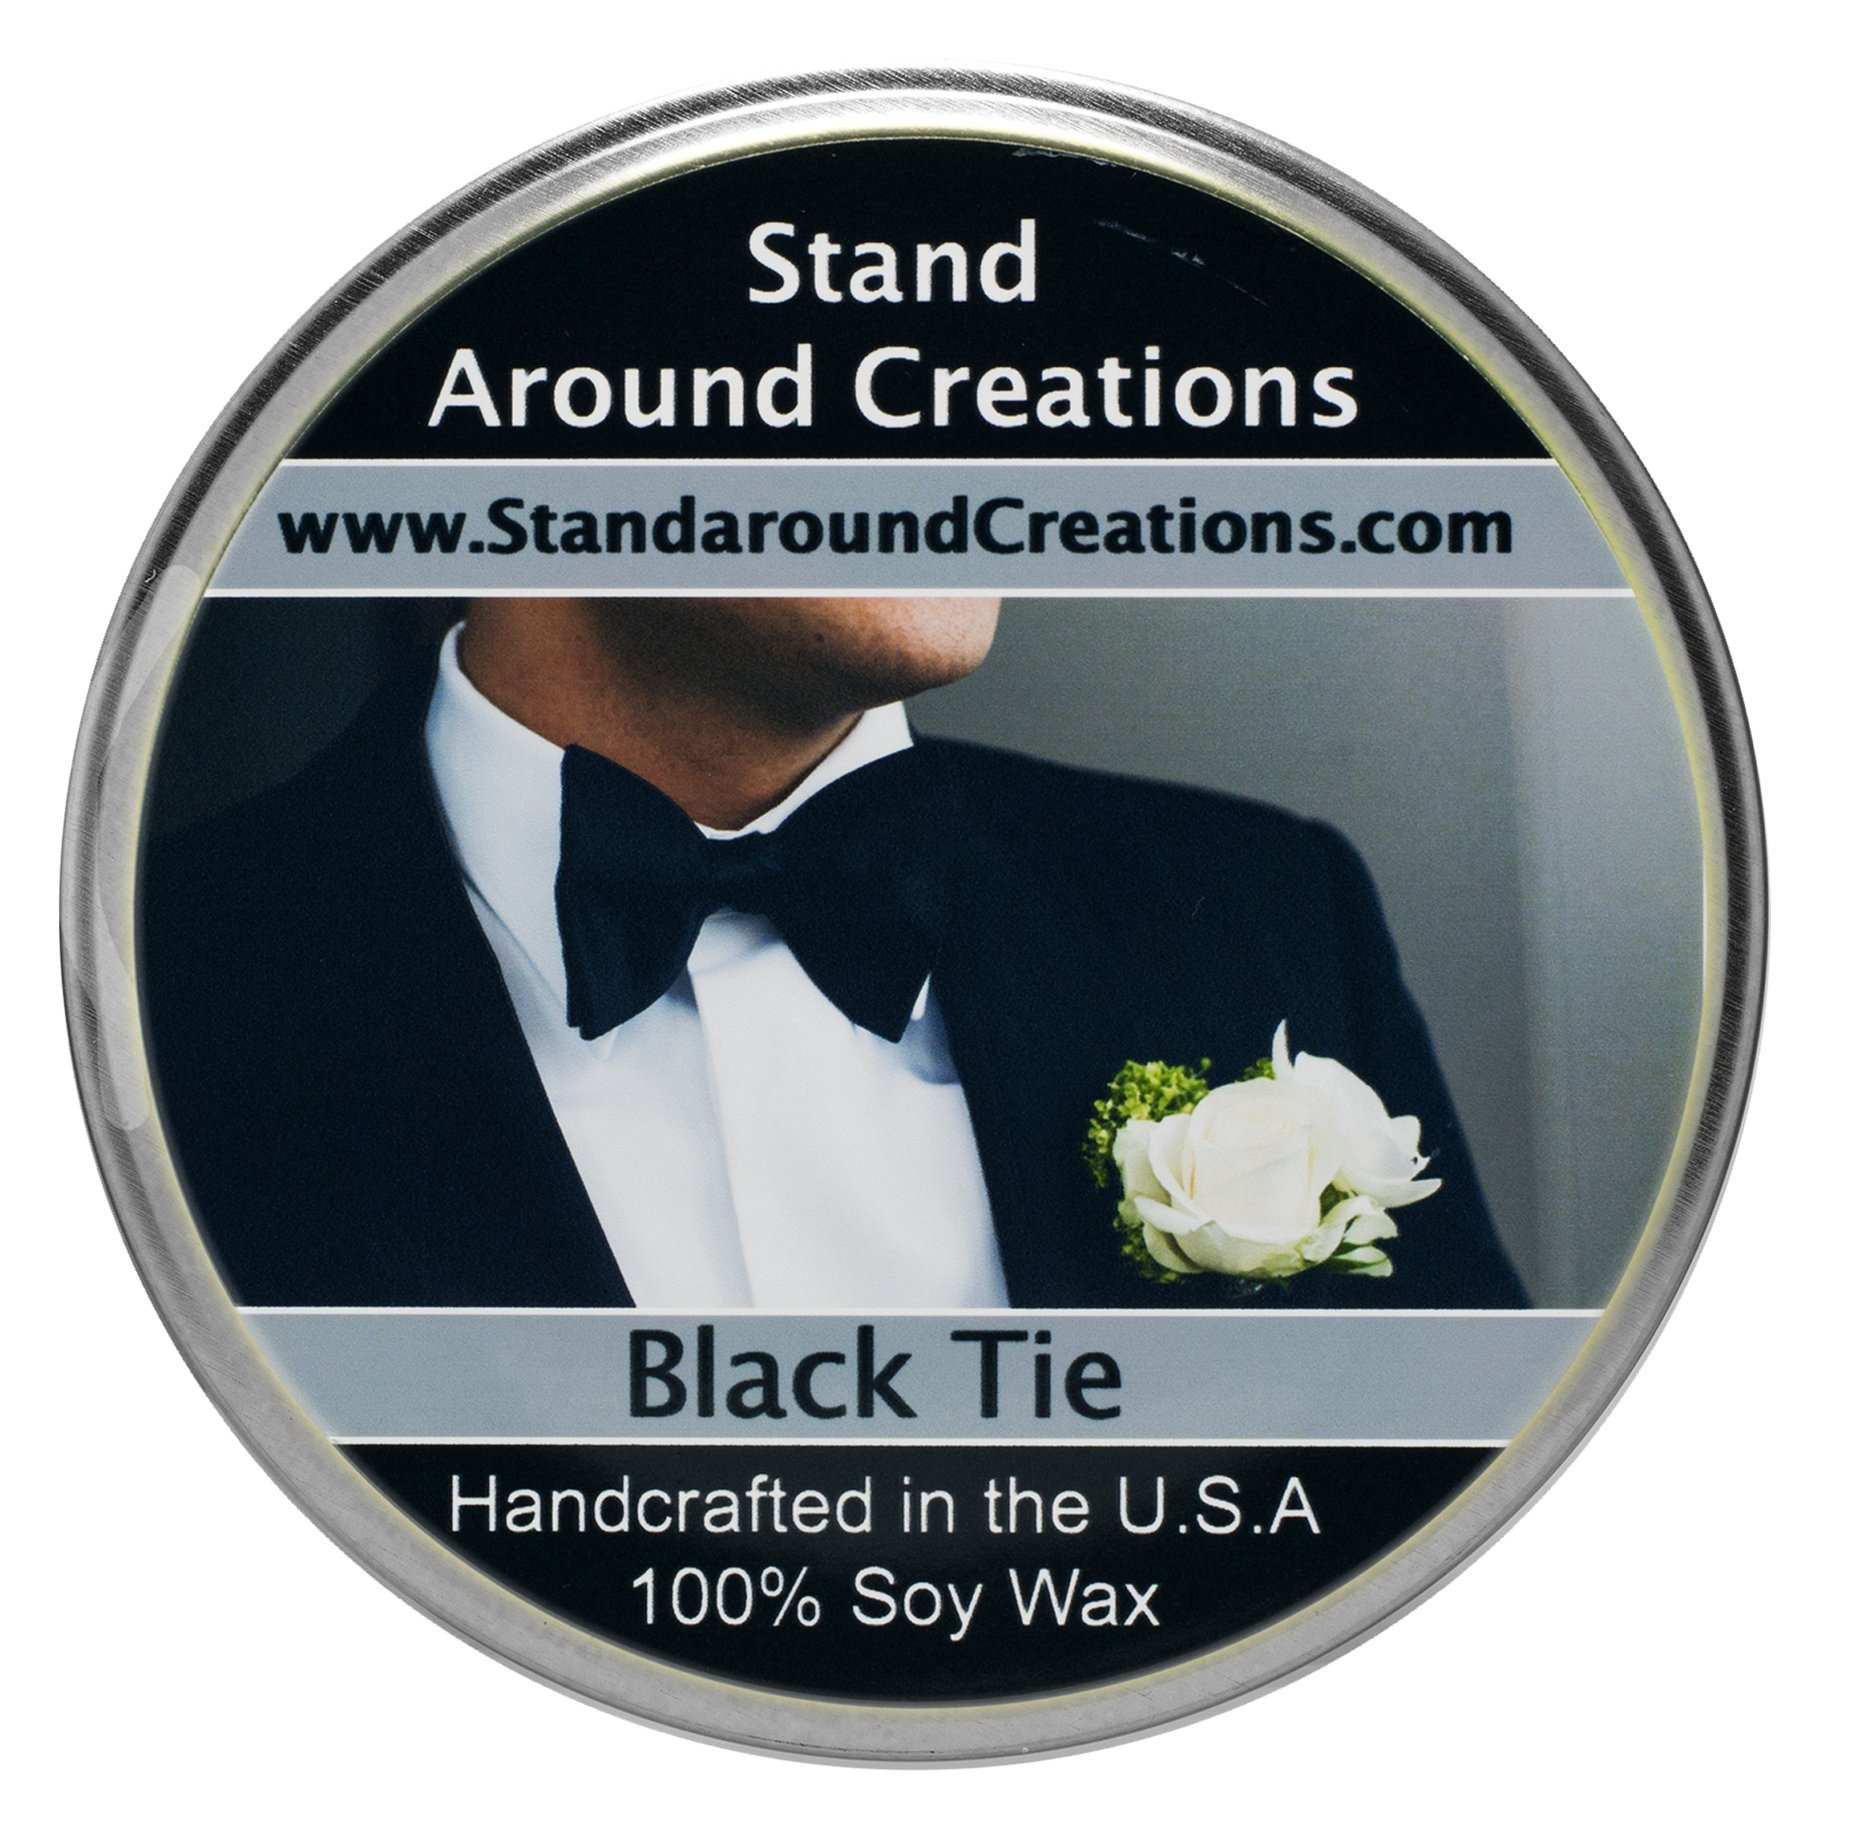 Premium 100% Soy Tureen Candle - 8 oz. - Black Tie: Sophisticated notes of leather w/ warm woods, patchouli, musk.